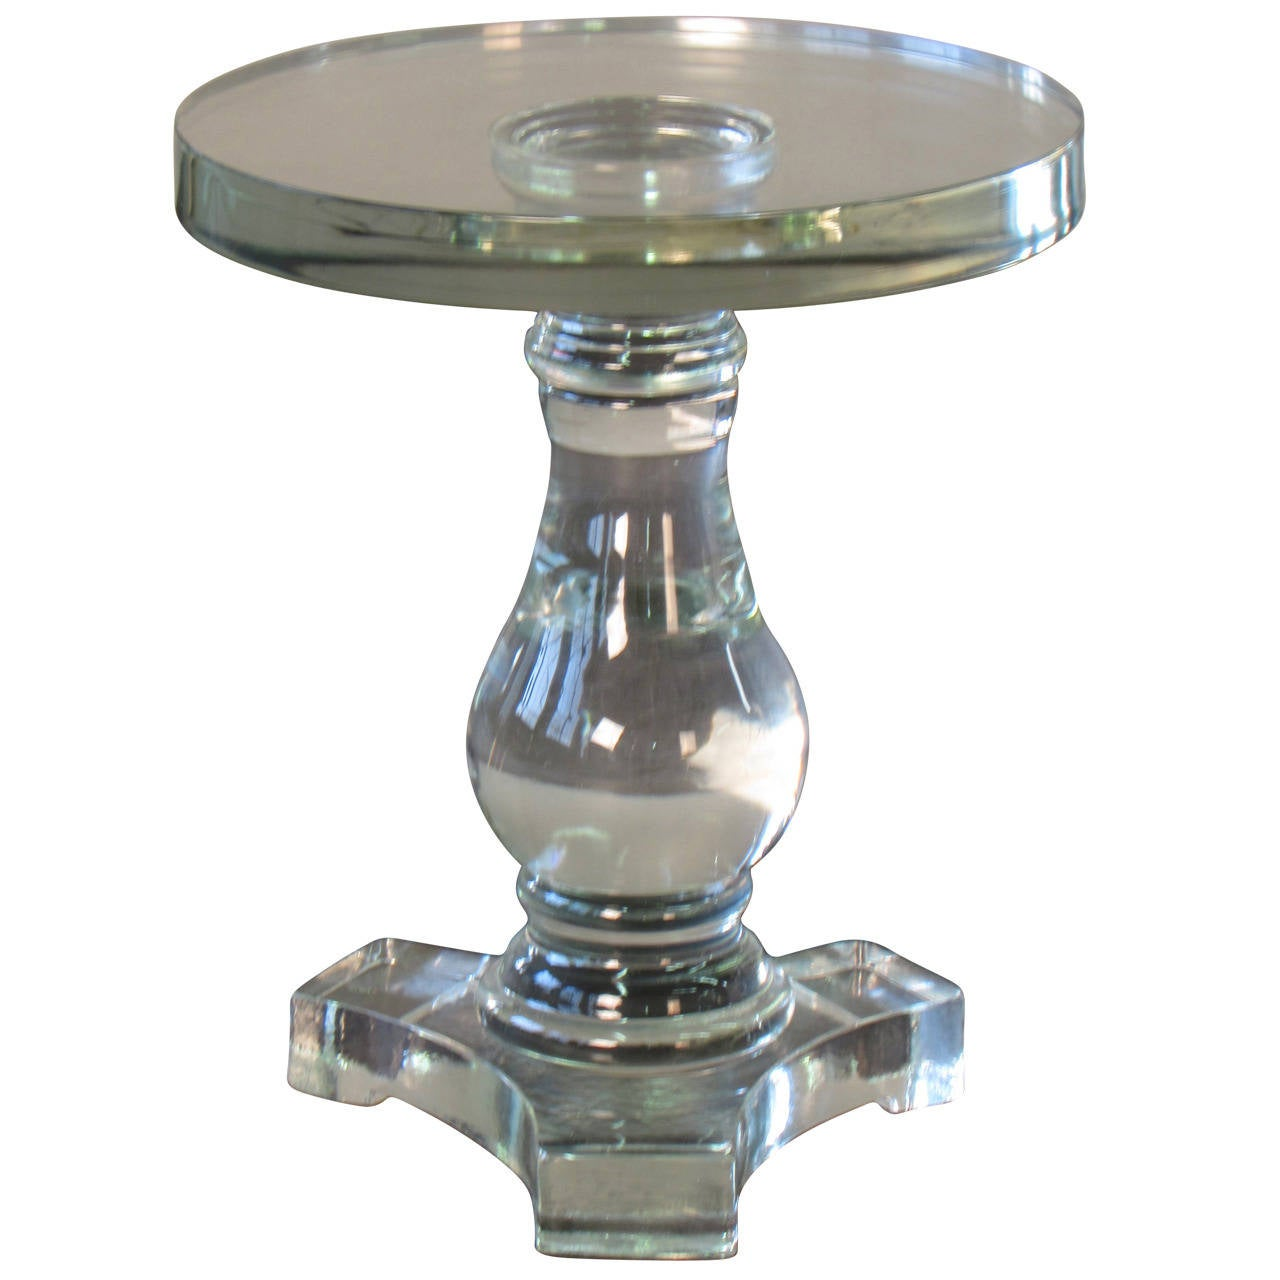 beautiful solid murano glass baluster table or pedestal by